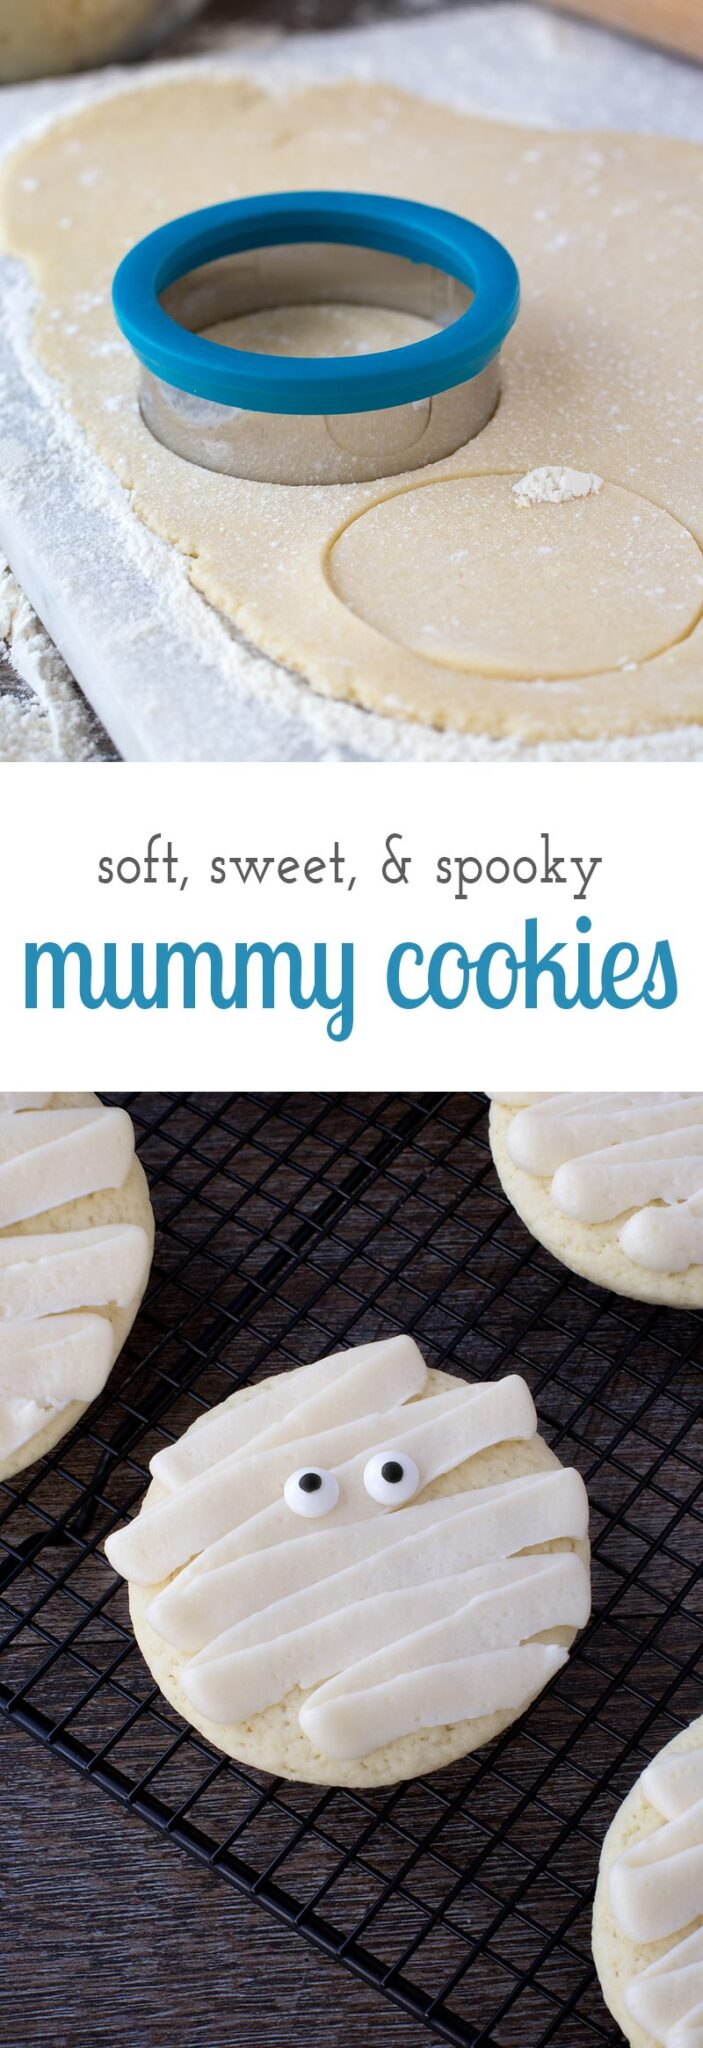 These delicious homemade Halloween Mummy Cookies are sure to add plenty of spooky fun to your child's lunchbox, school party, or after-school snack. They are soft, creamy, and guaranteed to delight children of all ages!